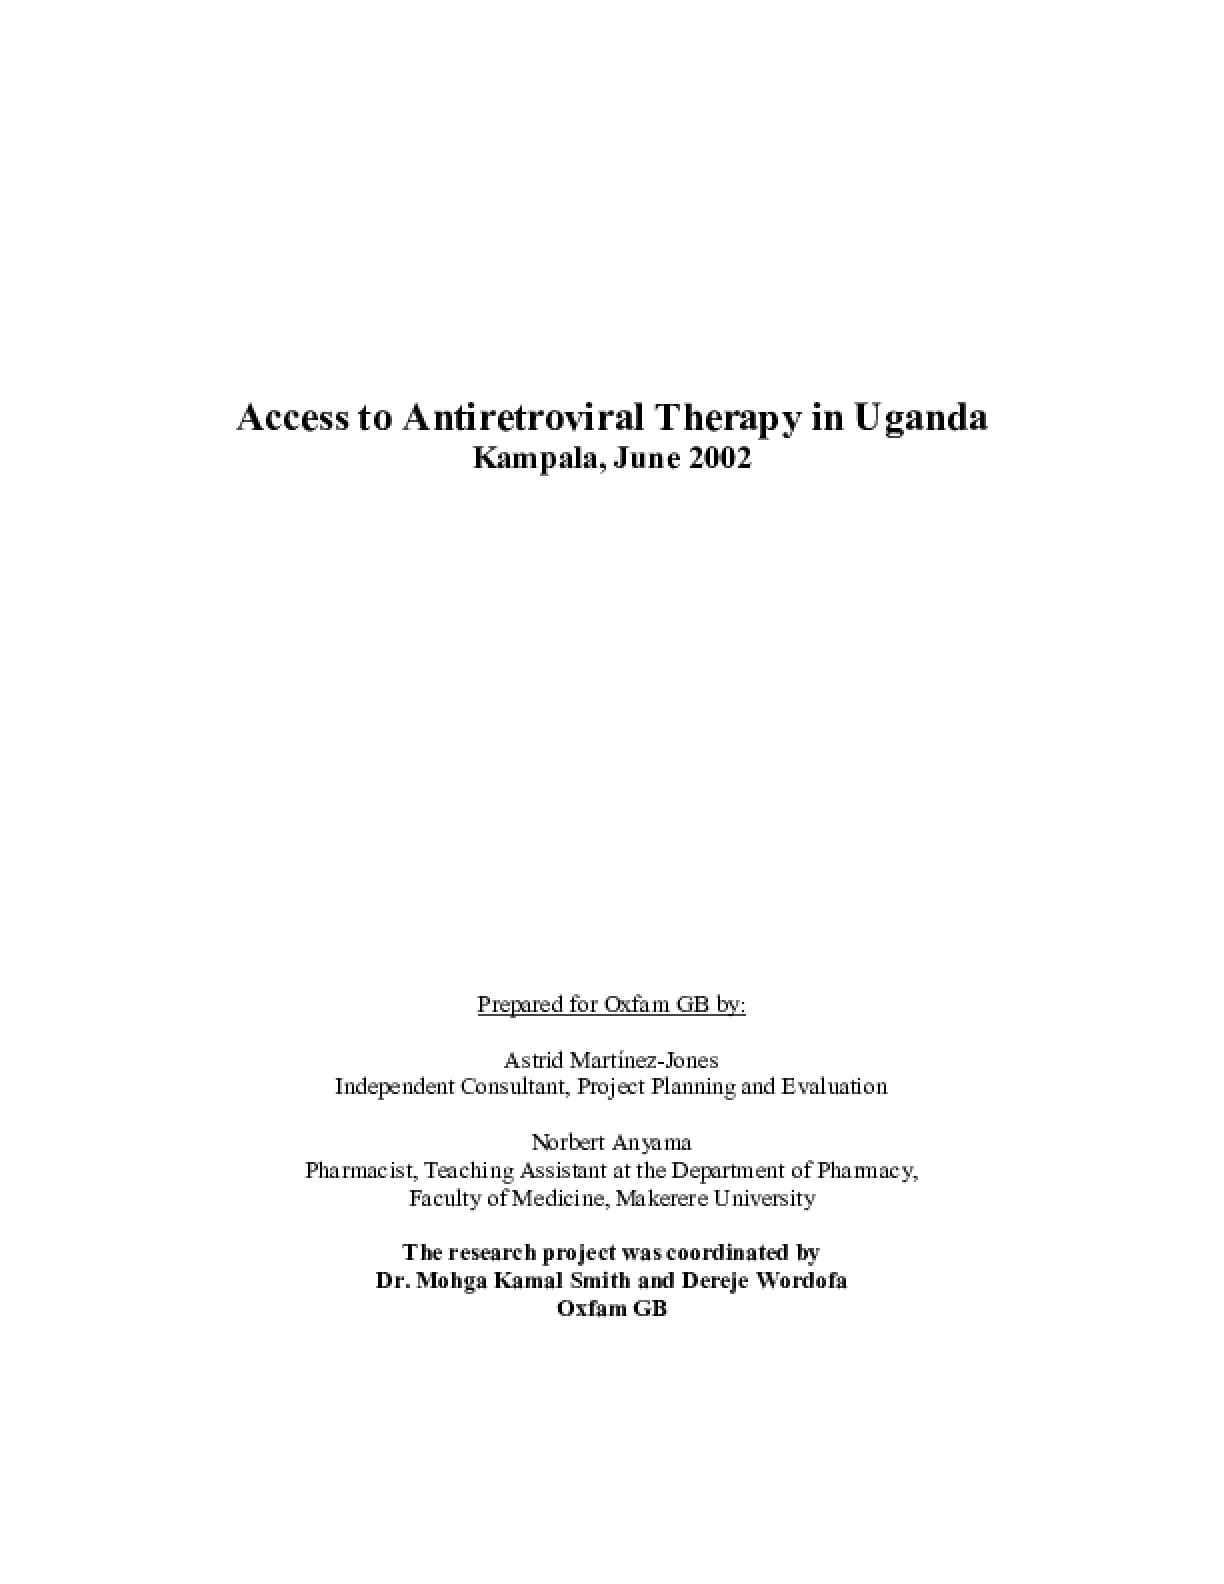 Access to Antiretroviral Therapy in Uganda: Kampala, June 2002